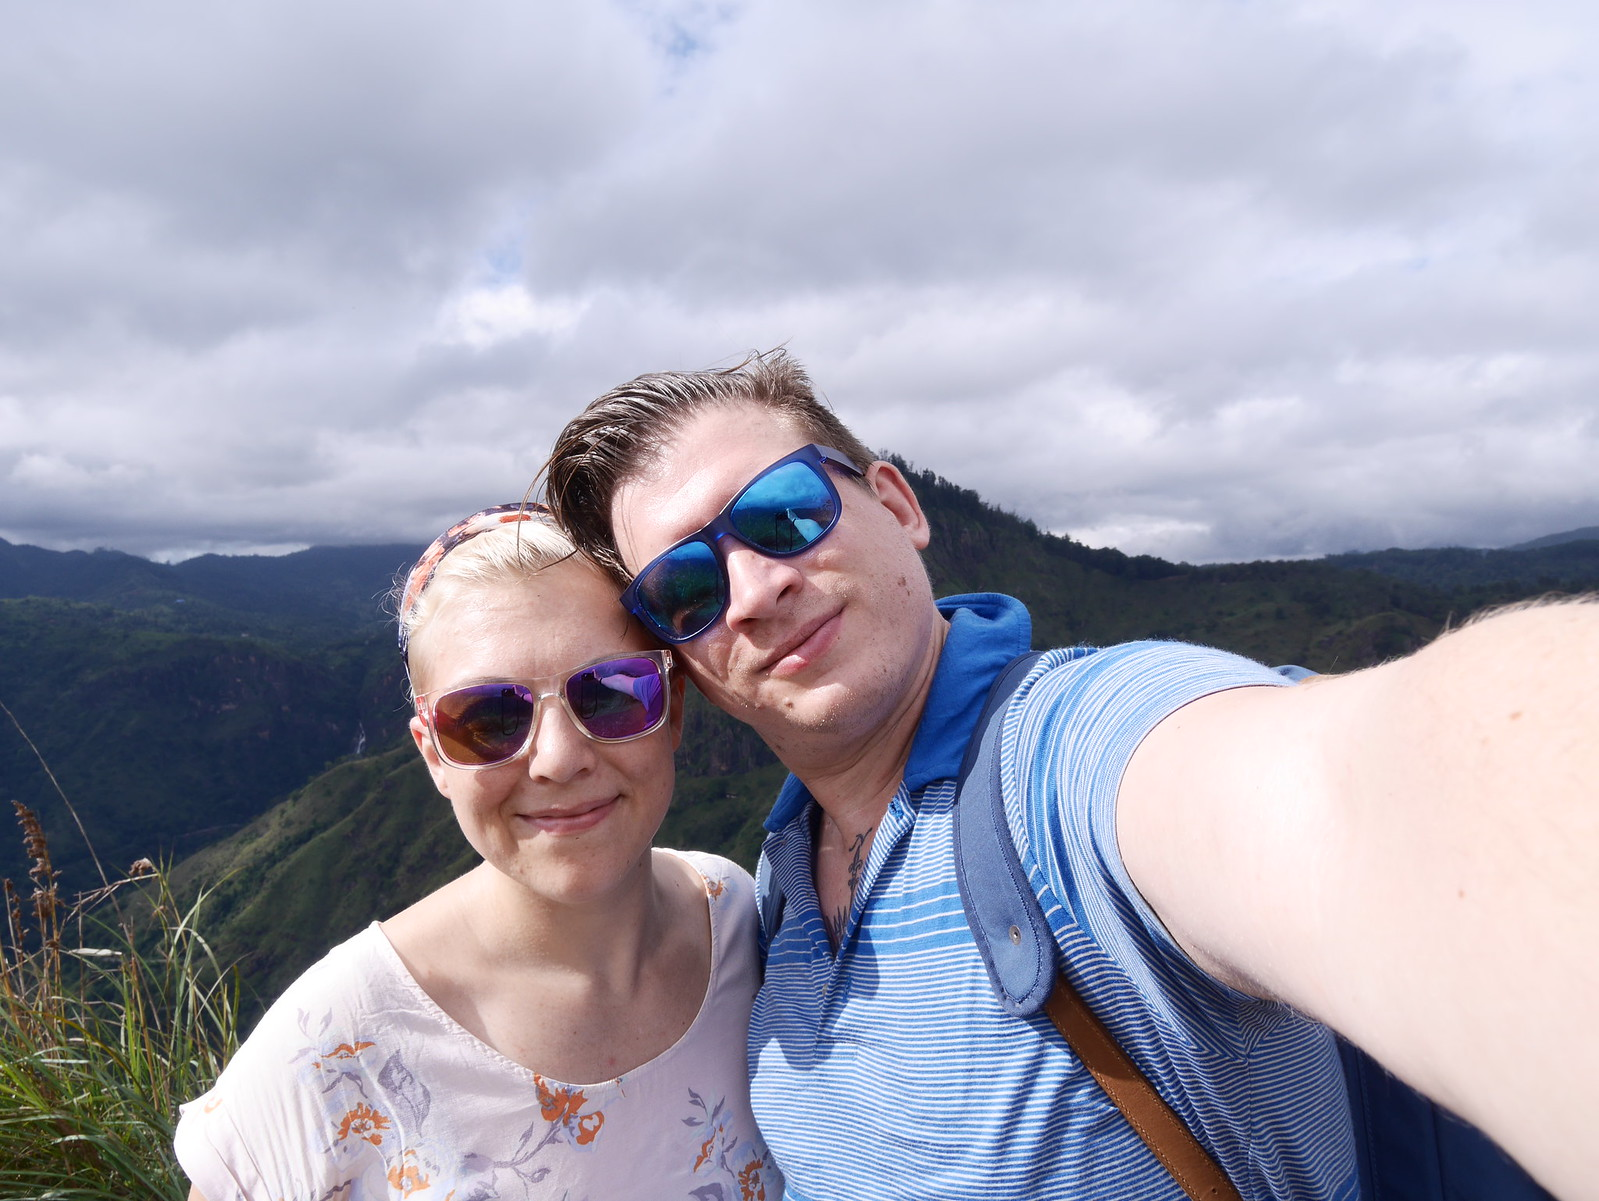 Selfie (Little Adam's Peak, Sri Lanka)